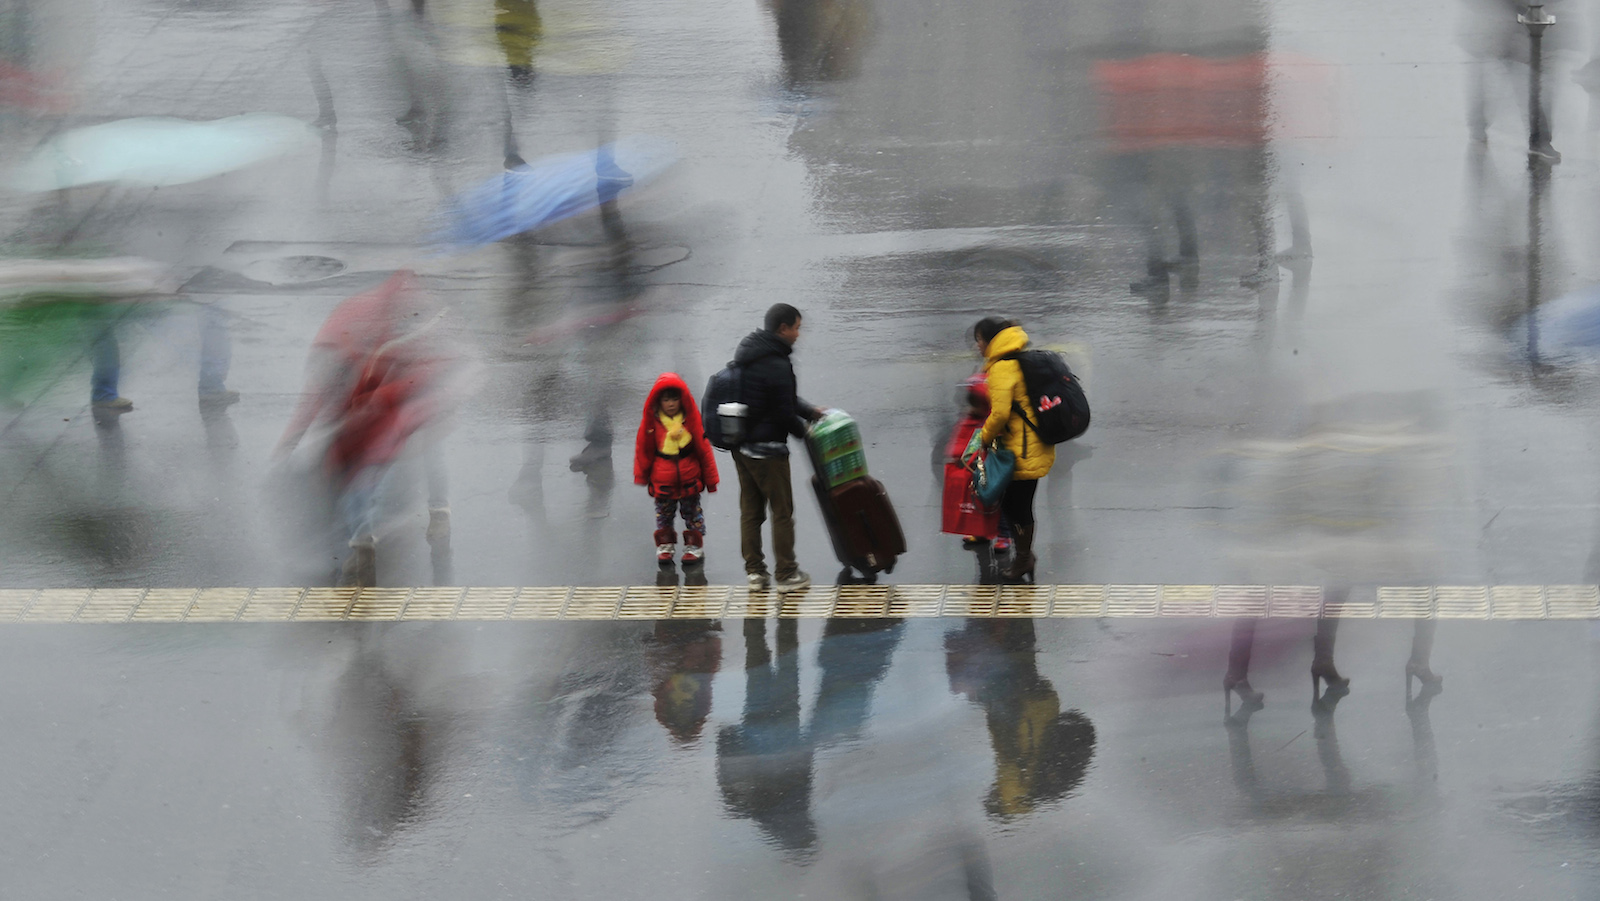 A long exposure photo shows a family standing under the rain outside a railway station in Hefei, Anhui province, February 6, 2014. According to Xinhua News Agency, migrants headed back to work after family reunions at their hometowns during the Chinese lunar New Year holiday.